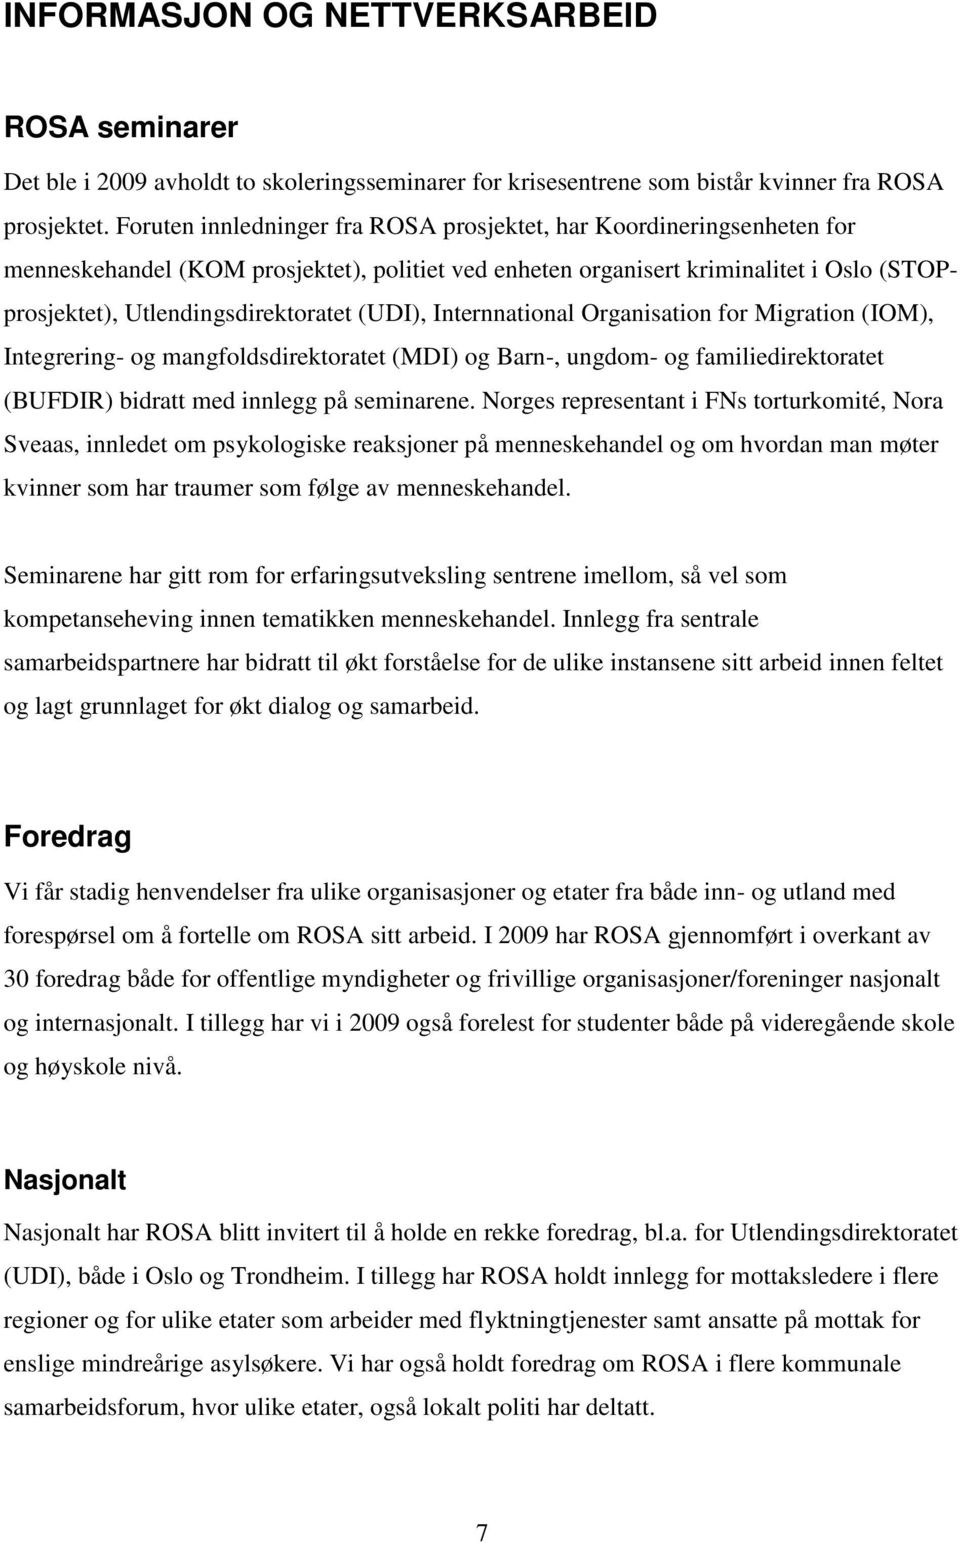 (UDI), Internnational Organisation for Migration (IOM), Integrering- og mangfoldsdirektoratet (MDI) og Barn-, ungdom- og familiedirektoratet (BUFDIR) bidratt med innlegg på seminarene.